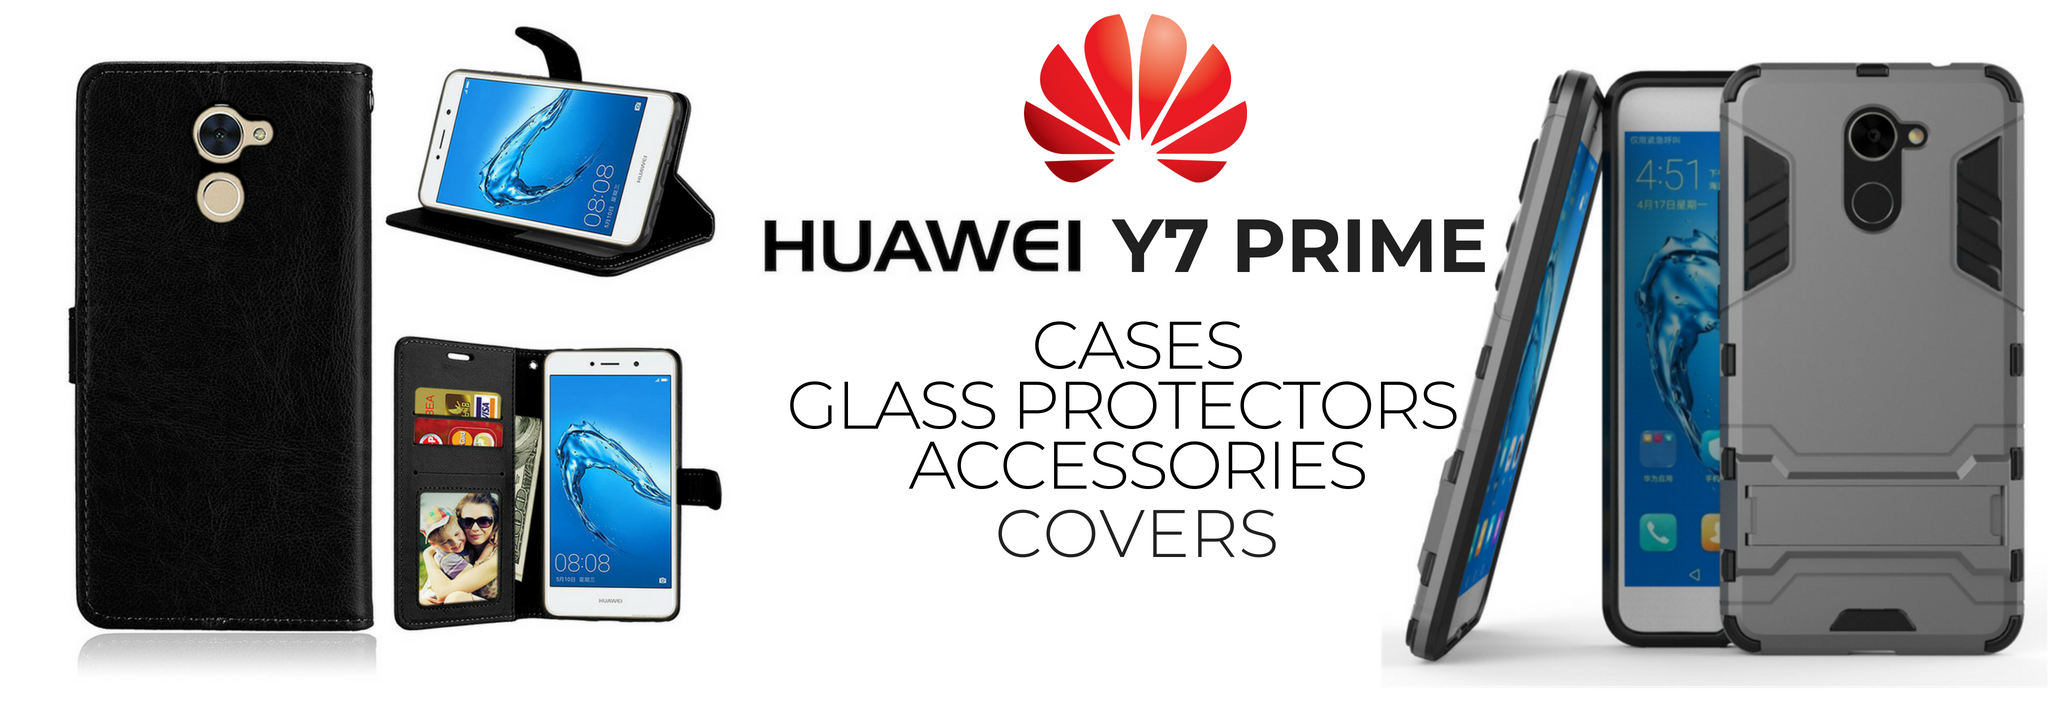 Huawei Y7 Prime Cases, Glass Covers,Accessories Buy in